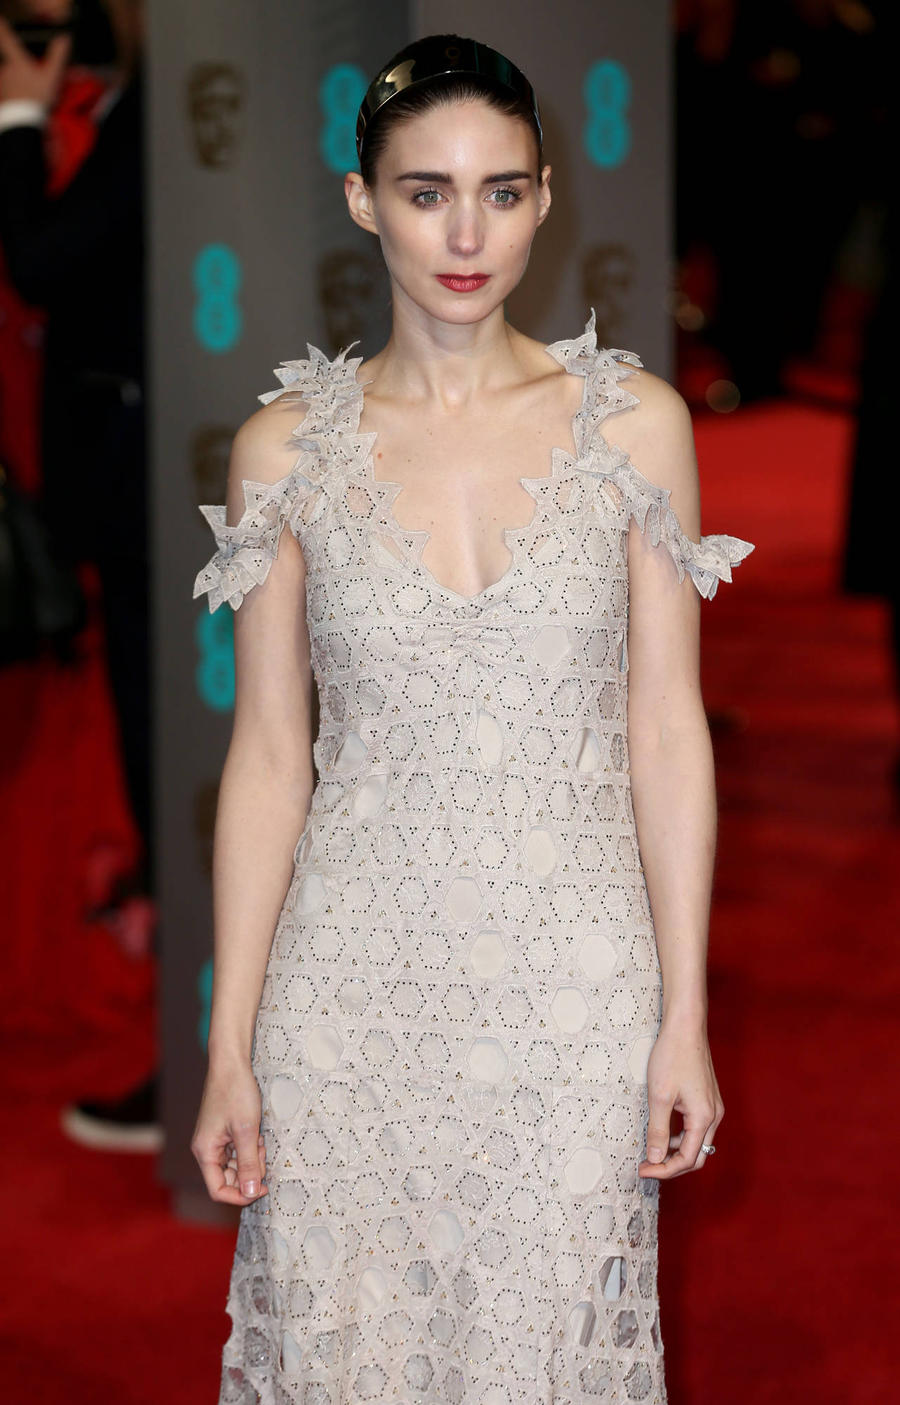 Rooney Mara: 'I Hate The Whitewashing Debate'